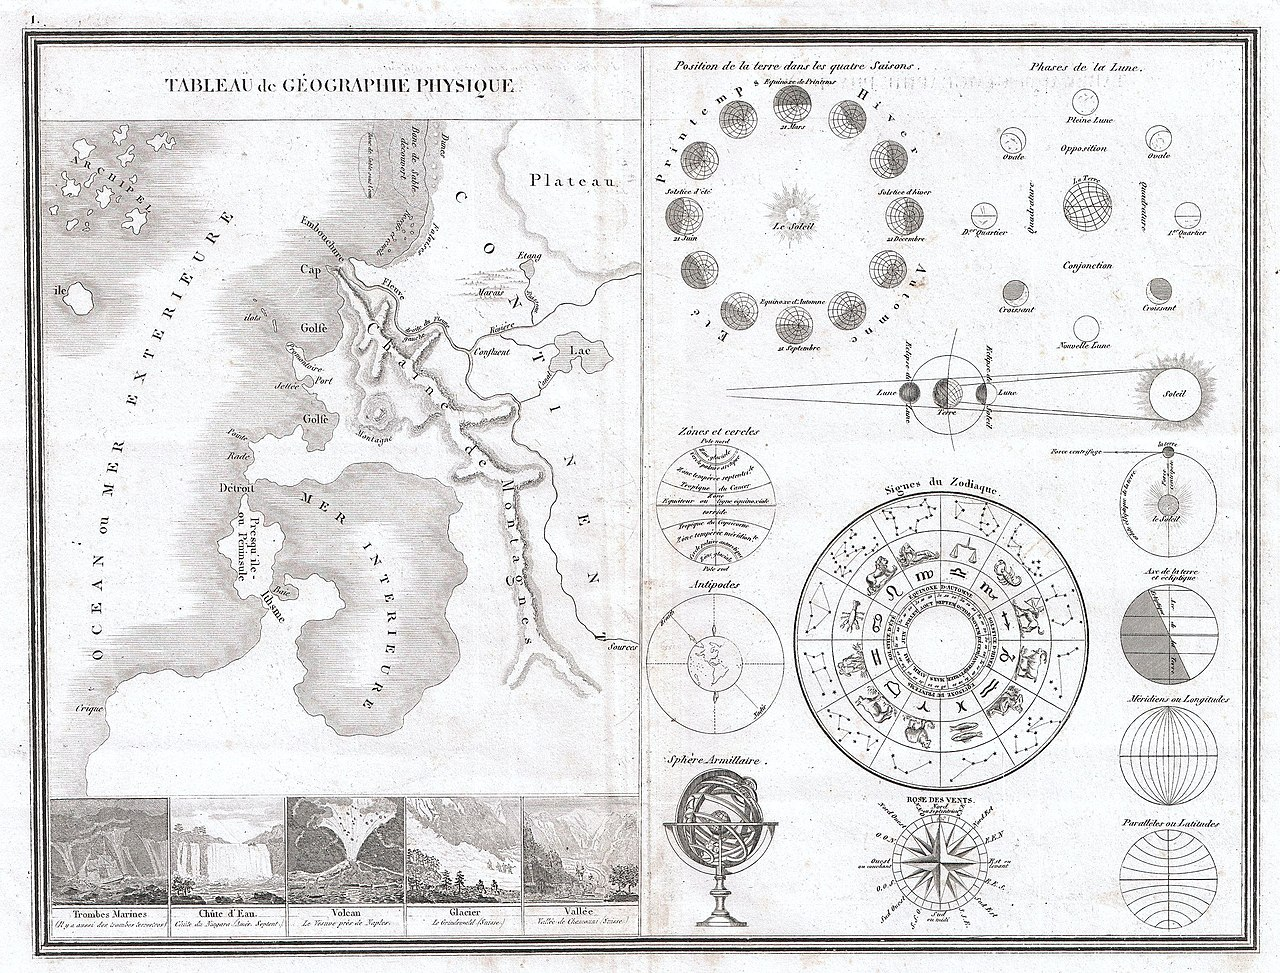 Moon Chart: 1838 Monin Map or Physical Tableau and Astronomy Chart ,Chart